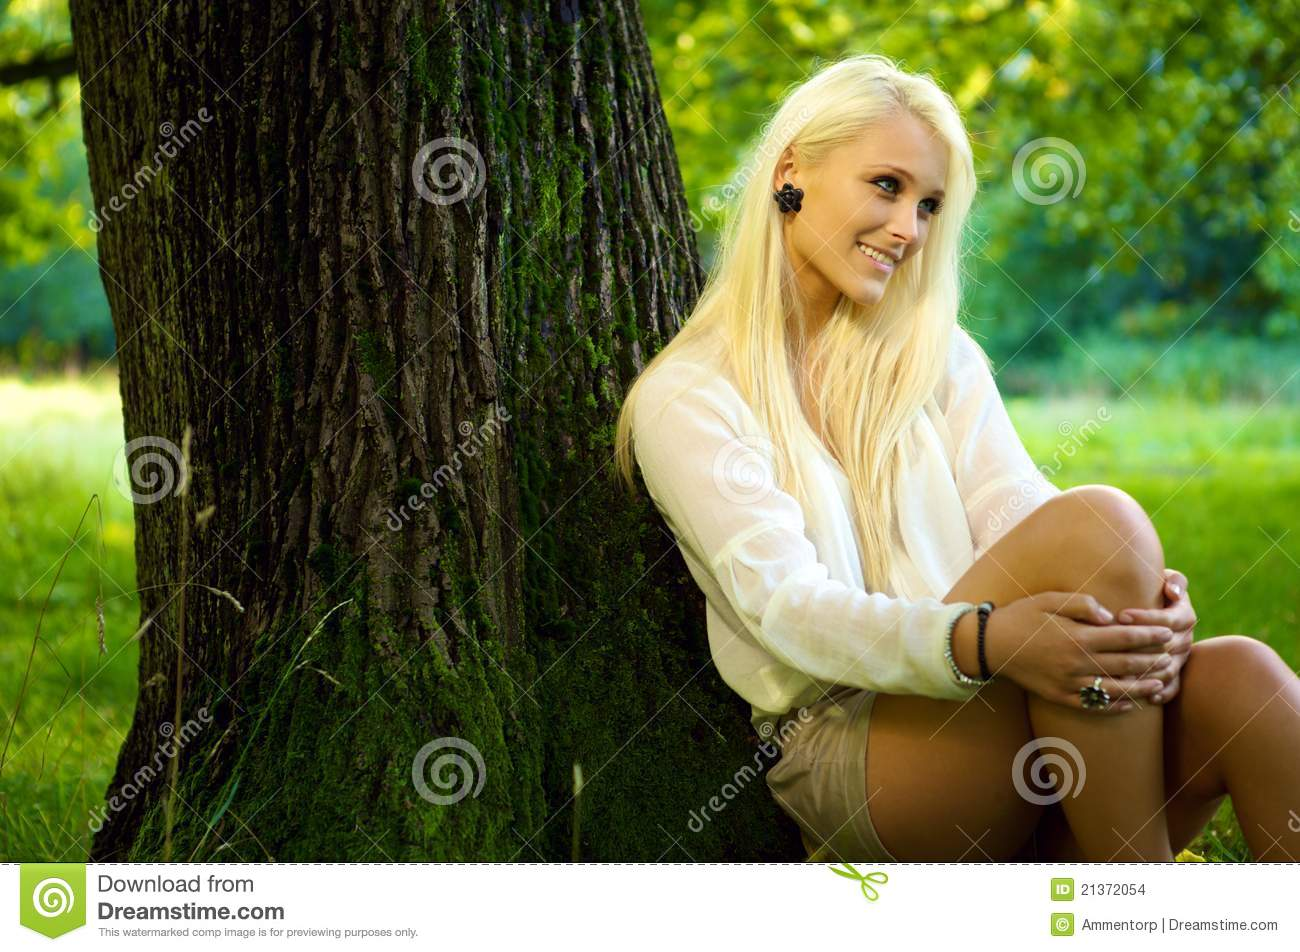 cute natural beauty relaxing against a tree stock photo - image of